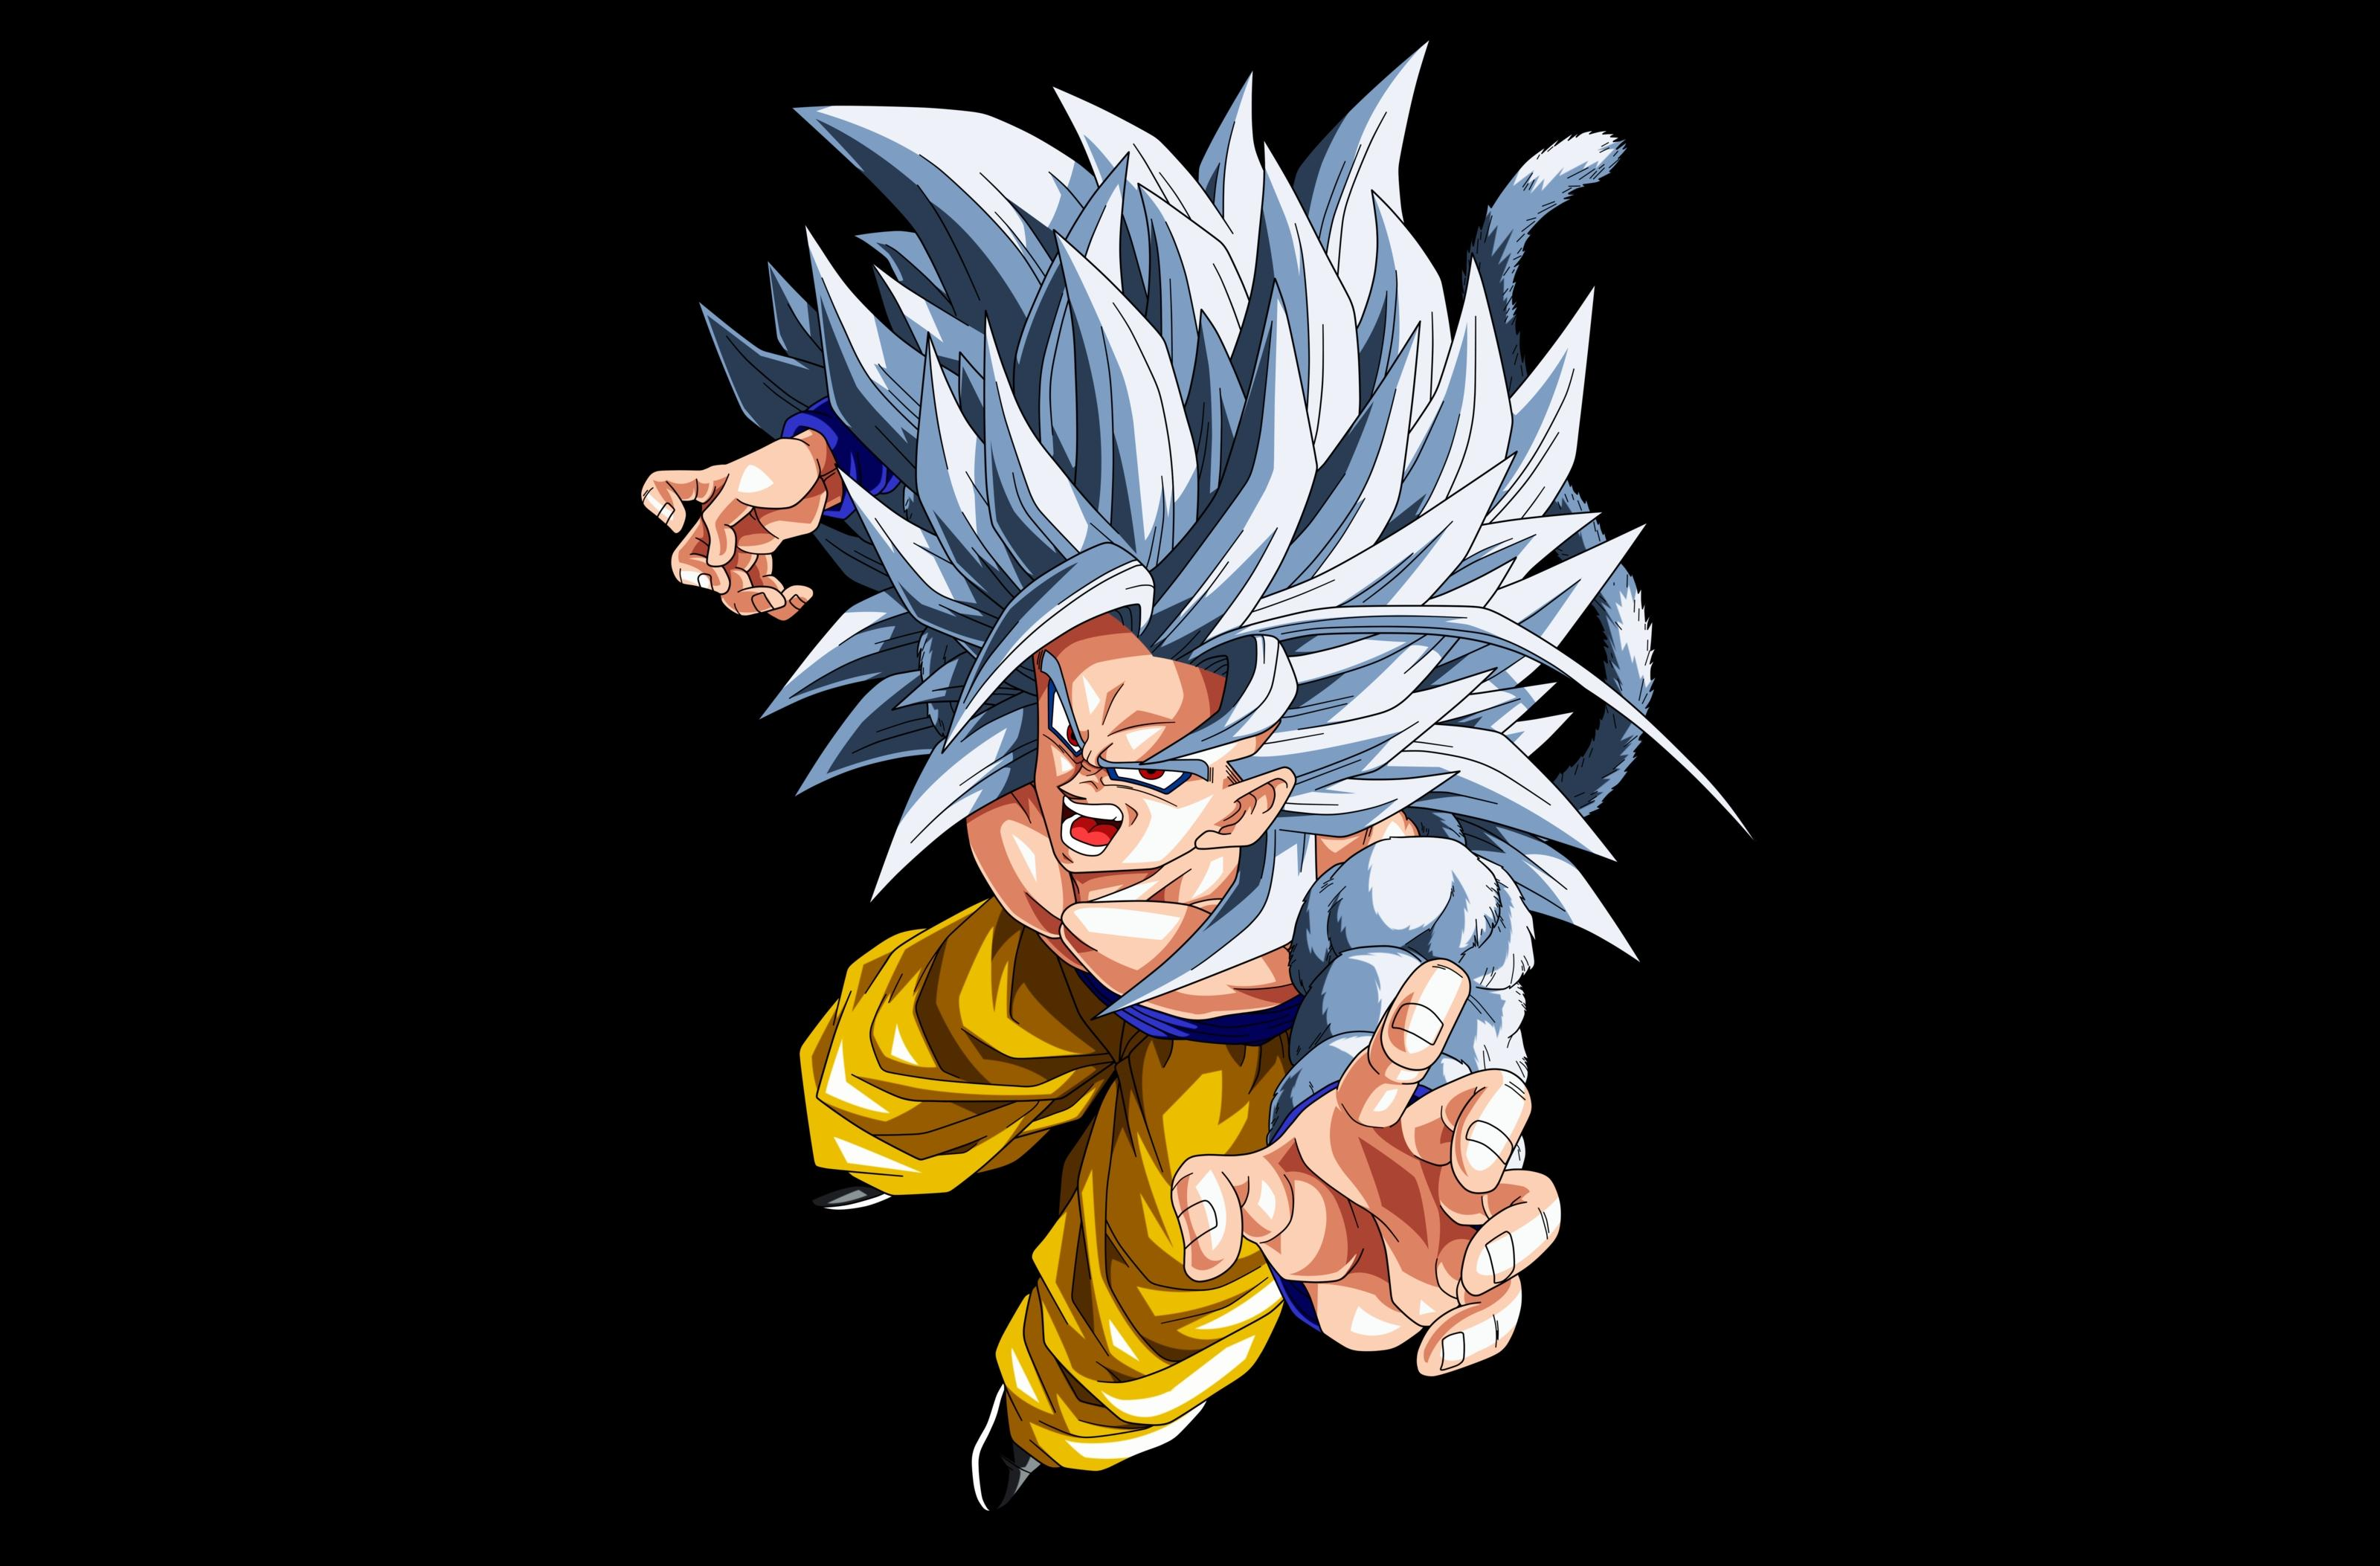 Ssj wallpaper wallpapersafari - Goku 5 super saiyan ...